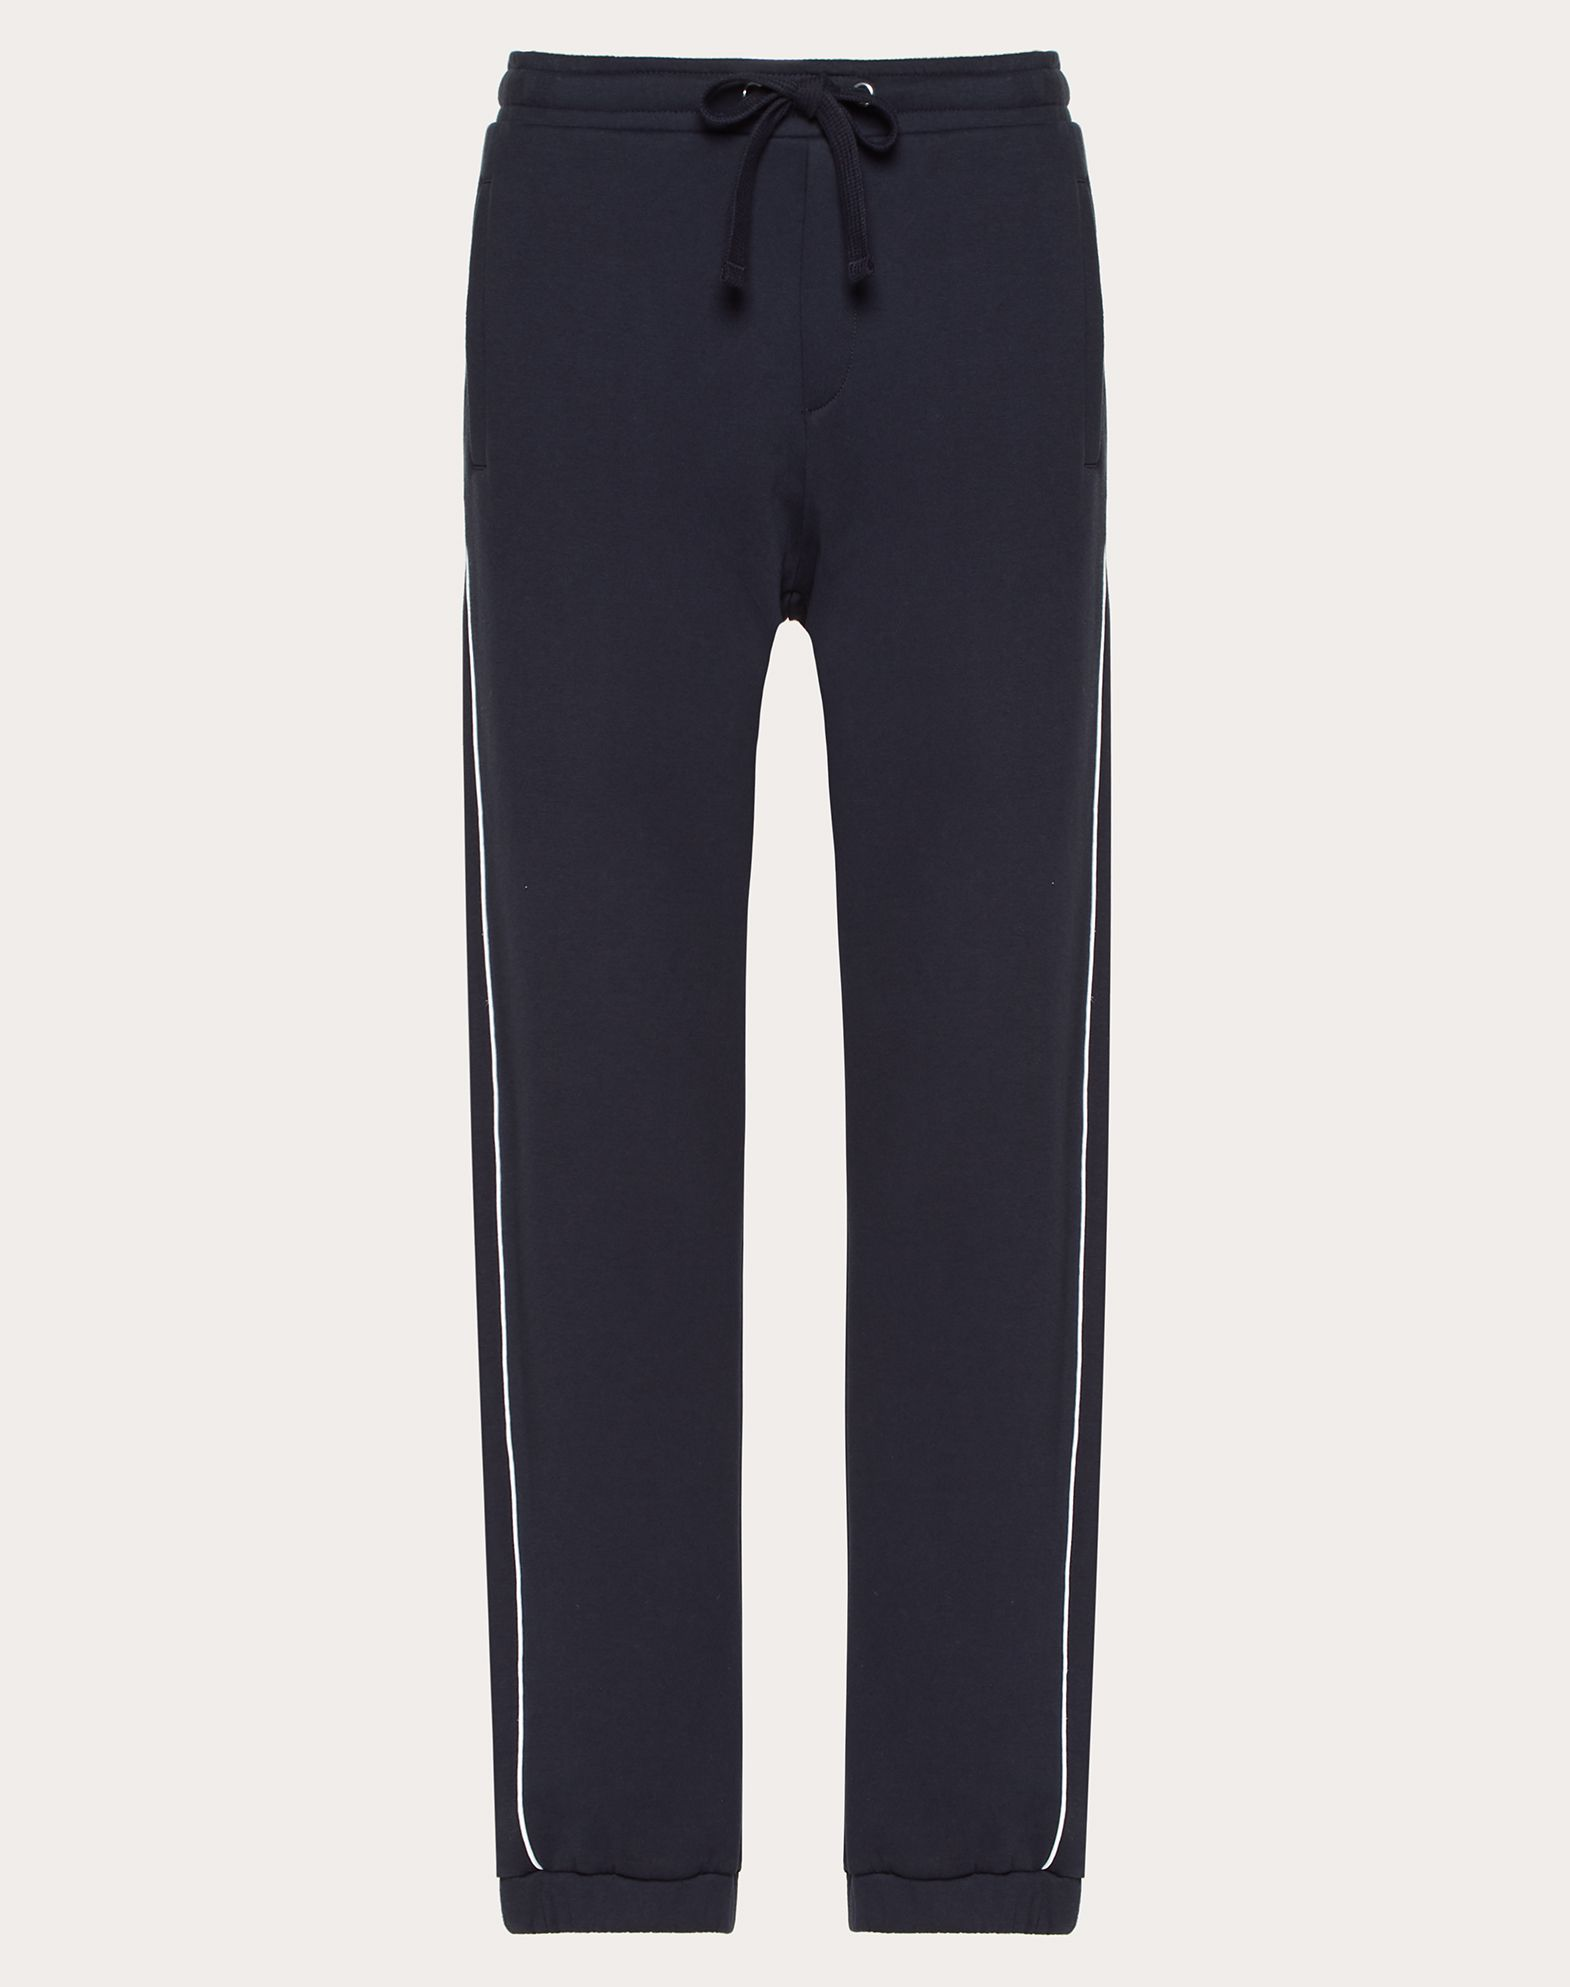 JERSEY TROUSERS WITH VLTN PRINT